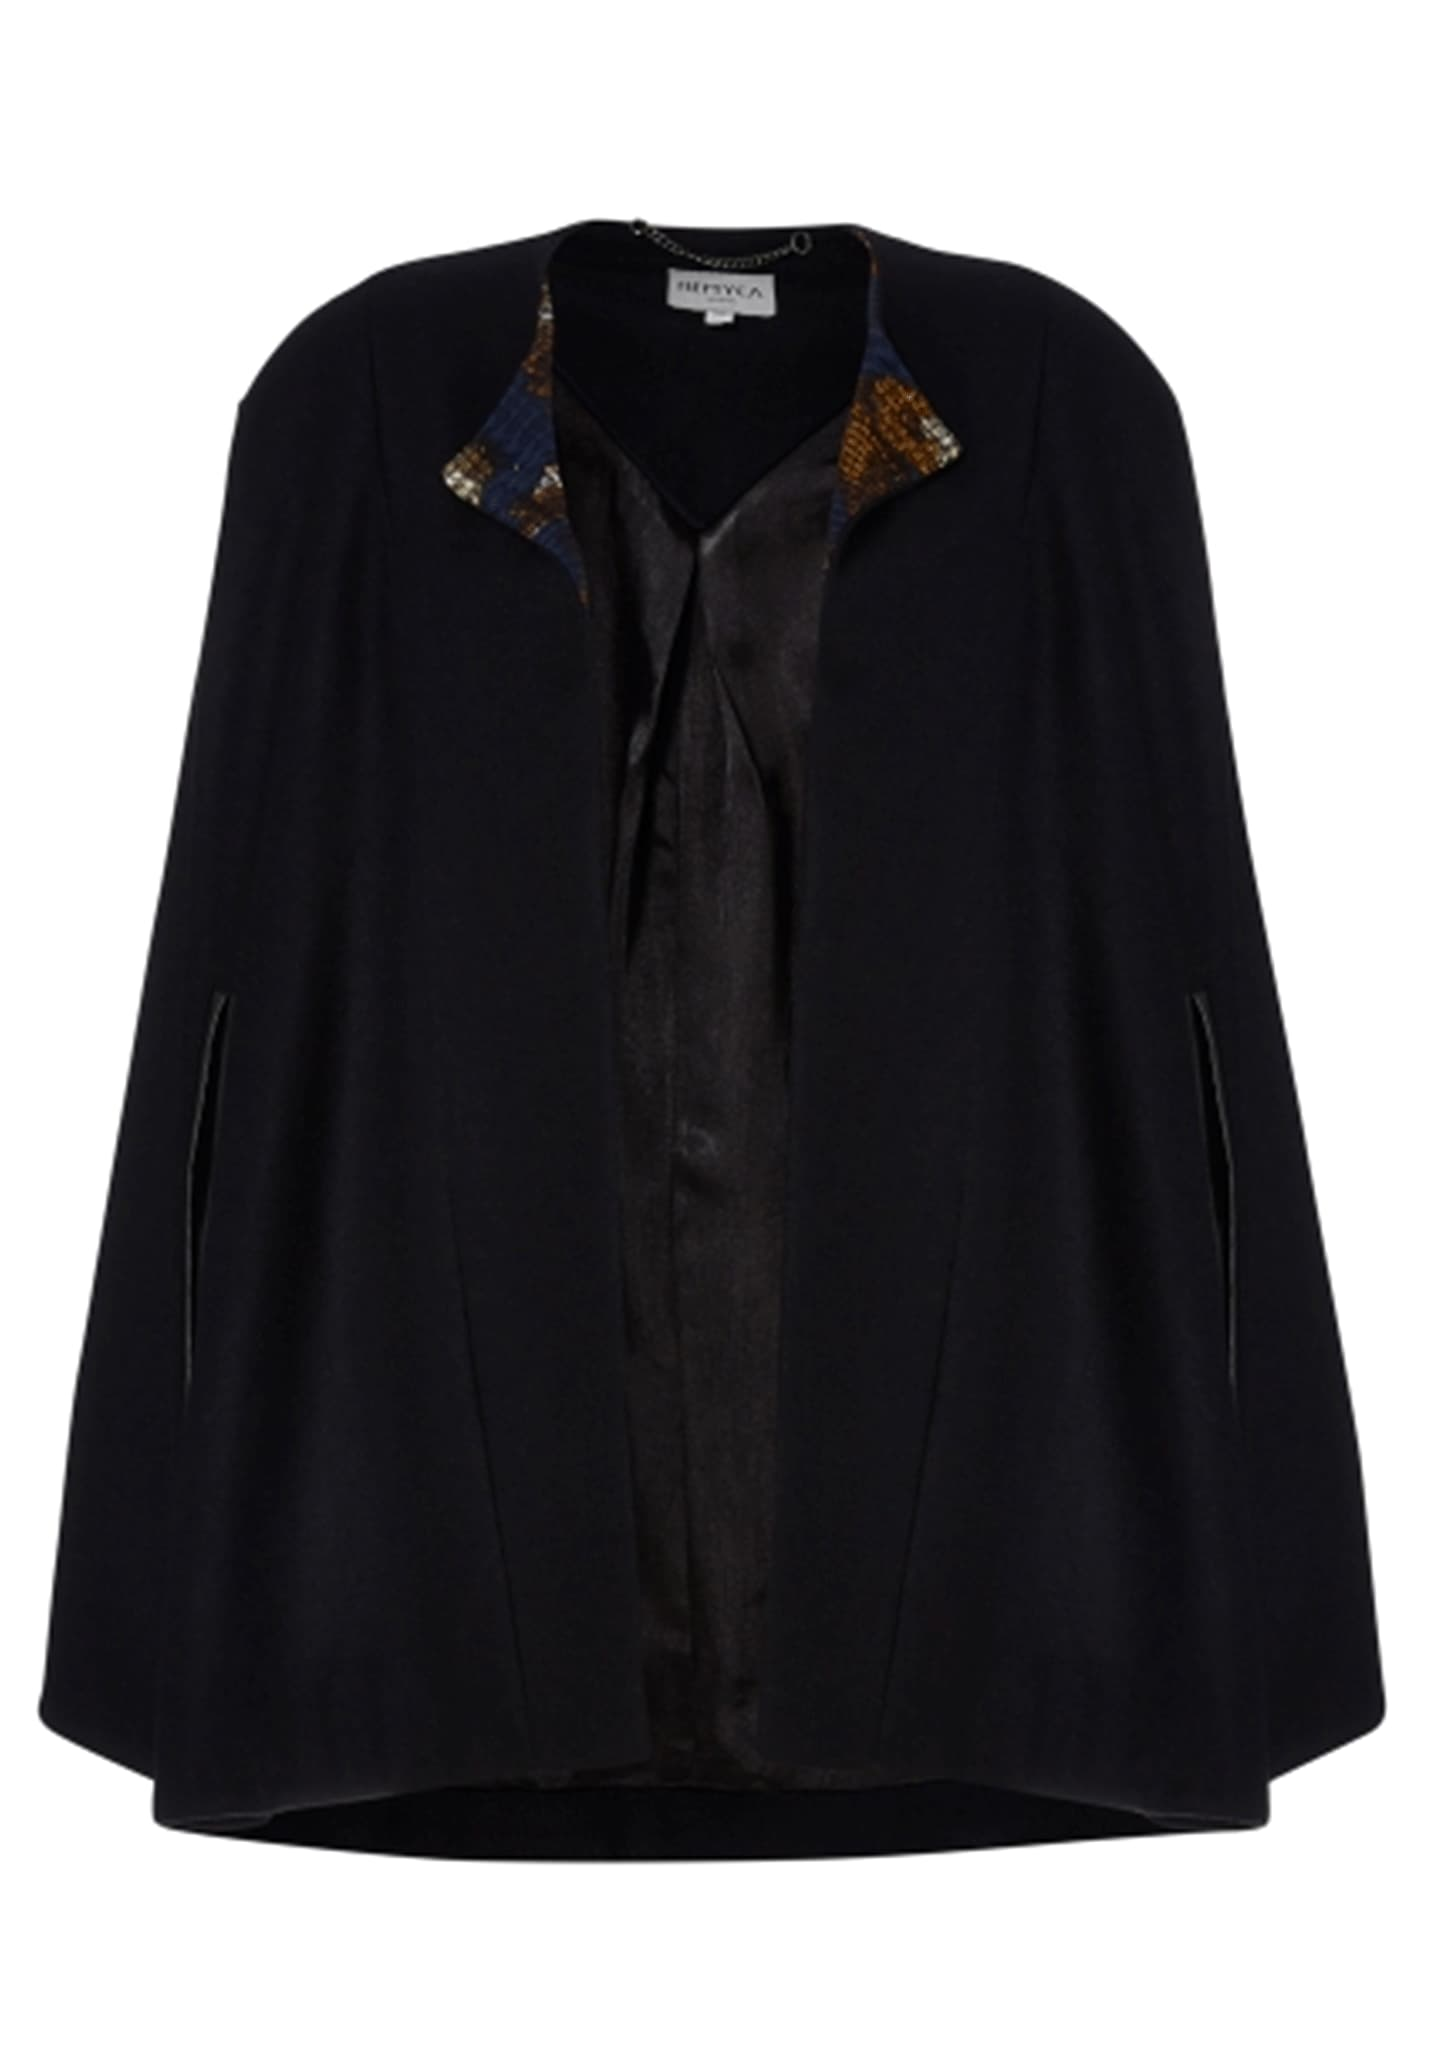 Navy cape, fully lined with printed jacquard panel on the inside